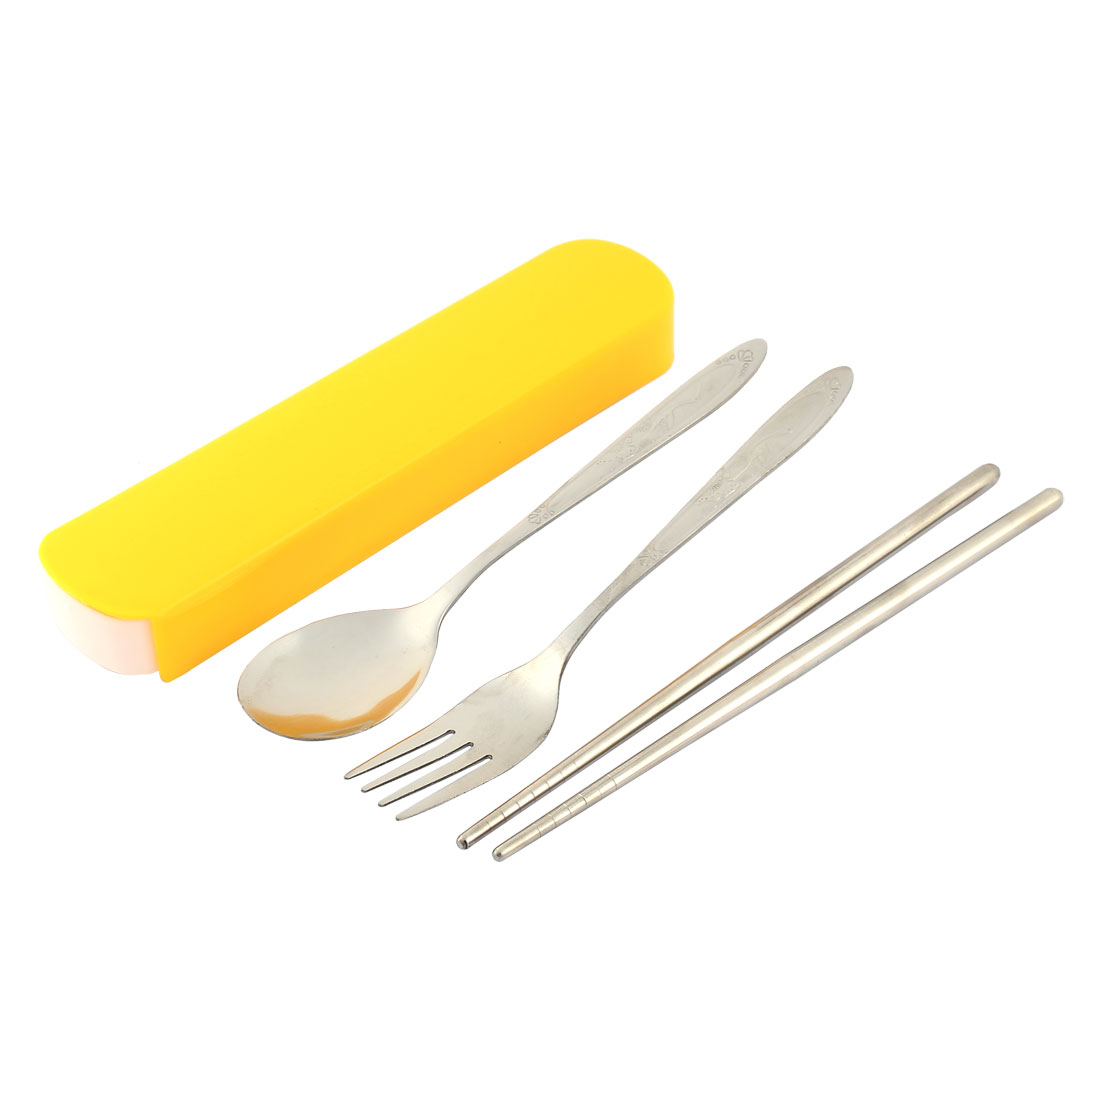 Fork Spoon Chopsticks Cutlery Portable Case Set 3 in 1 Yellow